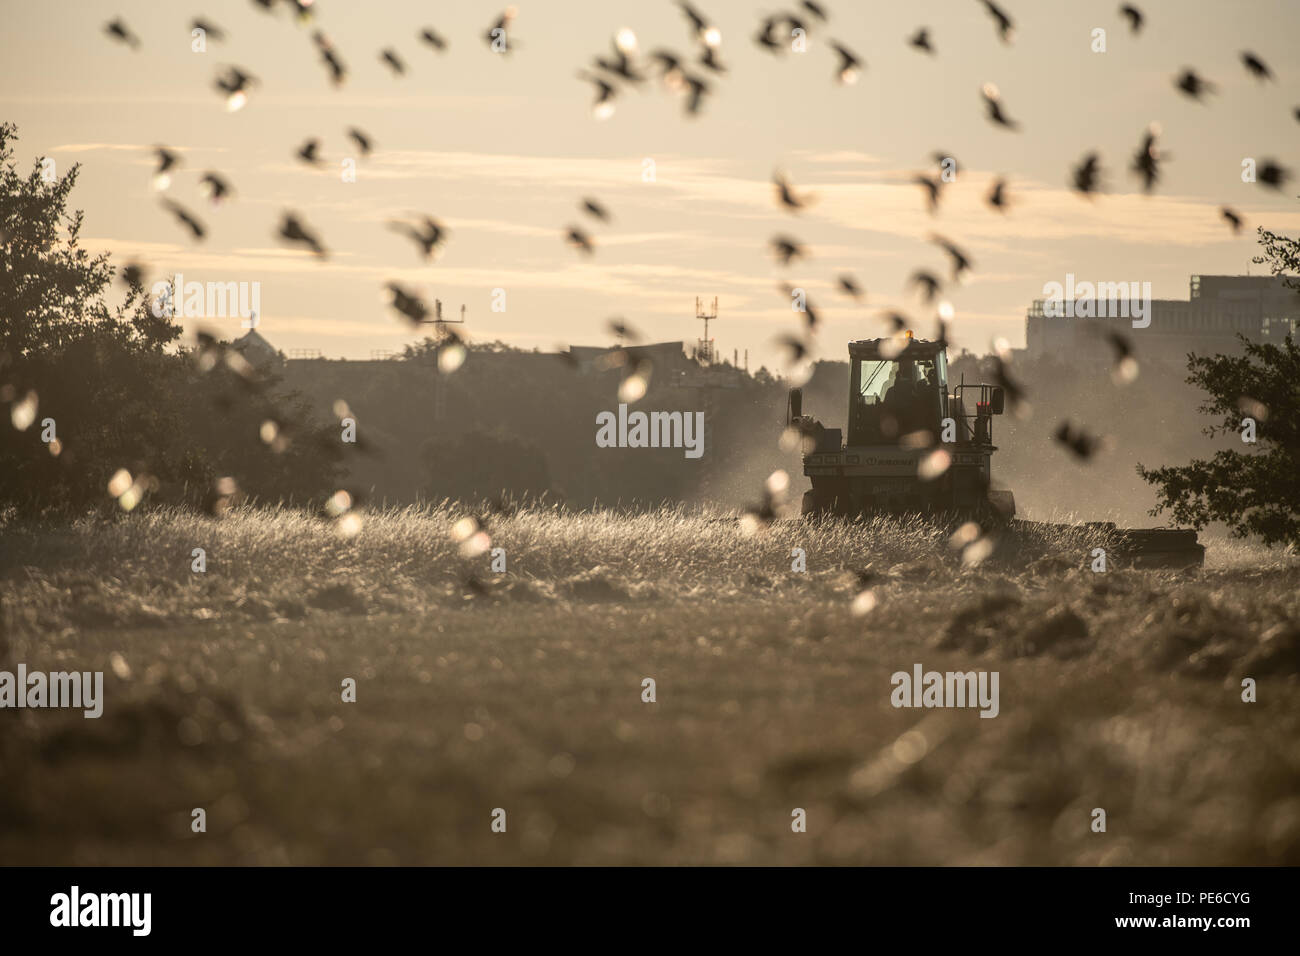 Berlin, Germany. 13th Aug, 2018. A combine harvester mowes a field on the Tempelhofer Feld, while a flock of birds rises into the air in front of the vehicle. Credit: Paul Zinken/dpa/Alamy Live News - Stock Image